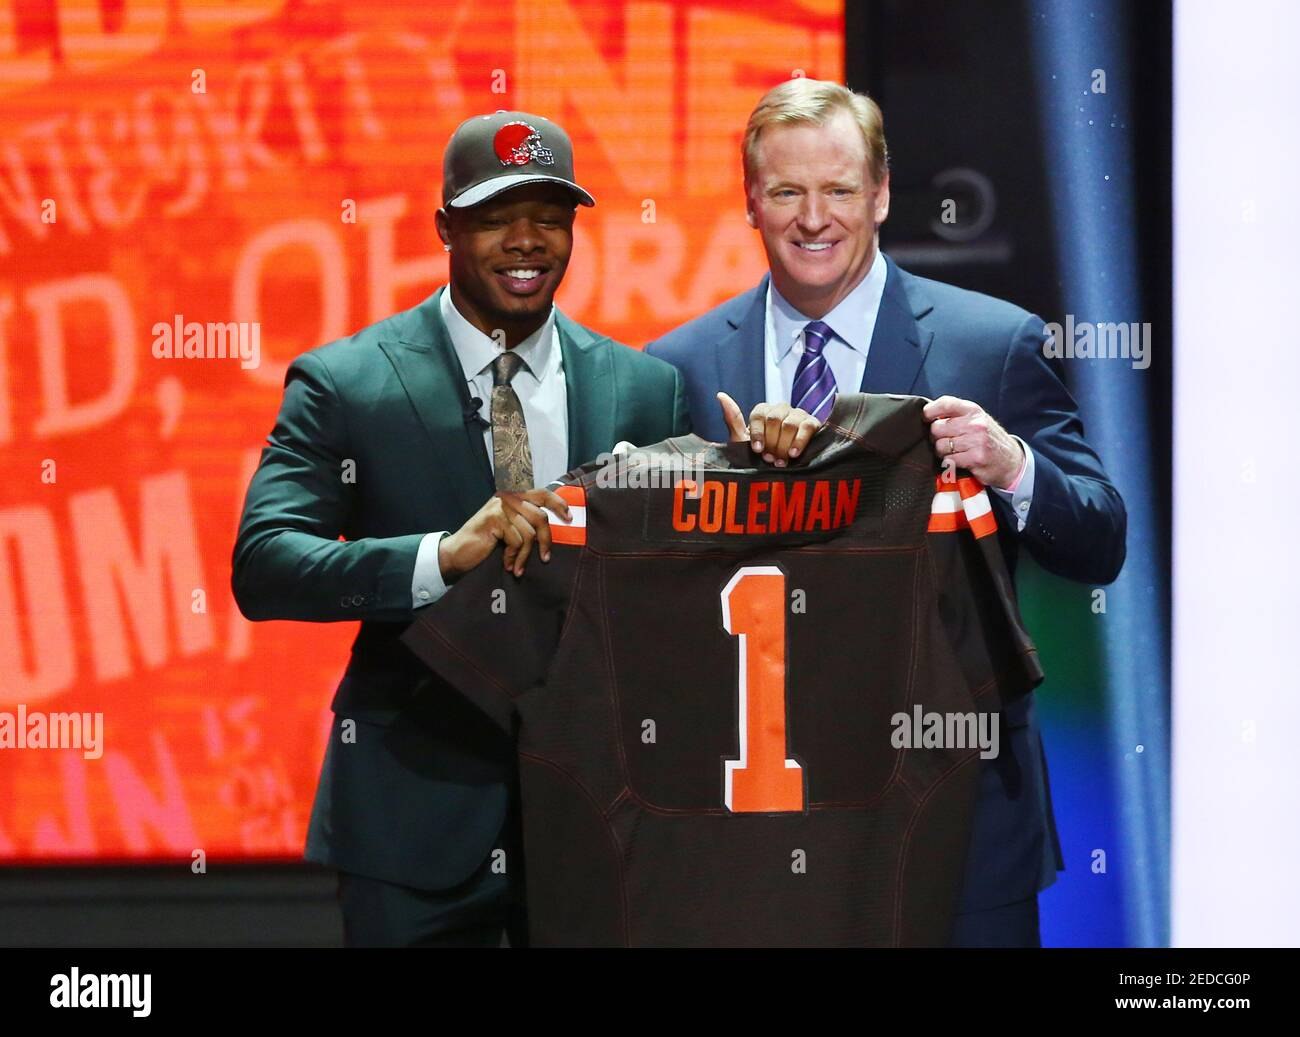 Apr 28, 2016; Chicago, IL, USA; Corey Coleman (Baylor) with NFL commissioner Roger Goodell after being selected by the Cleveland Browns as the number fifteen overall pick in the first round of the 2016 NFL Draft at Auditorium Theatre. Mandatory Credit: Jerry Lai-USA TODAY Sports  / Reuters  Picture Supplied by Action Images   (TAGS: Sport American Football NFL) *** Local Caption *** 2016-04-29T020821Z 1838076610 NOCID RTRMADP 3 NFL-2016-NFL-DRAFT.JPG Stock Photo